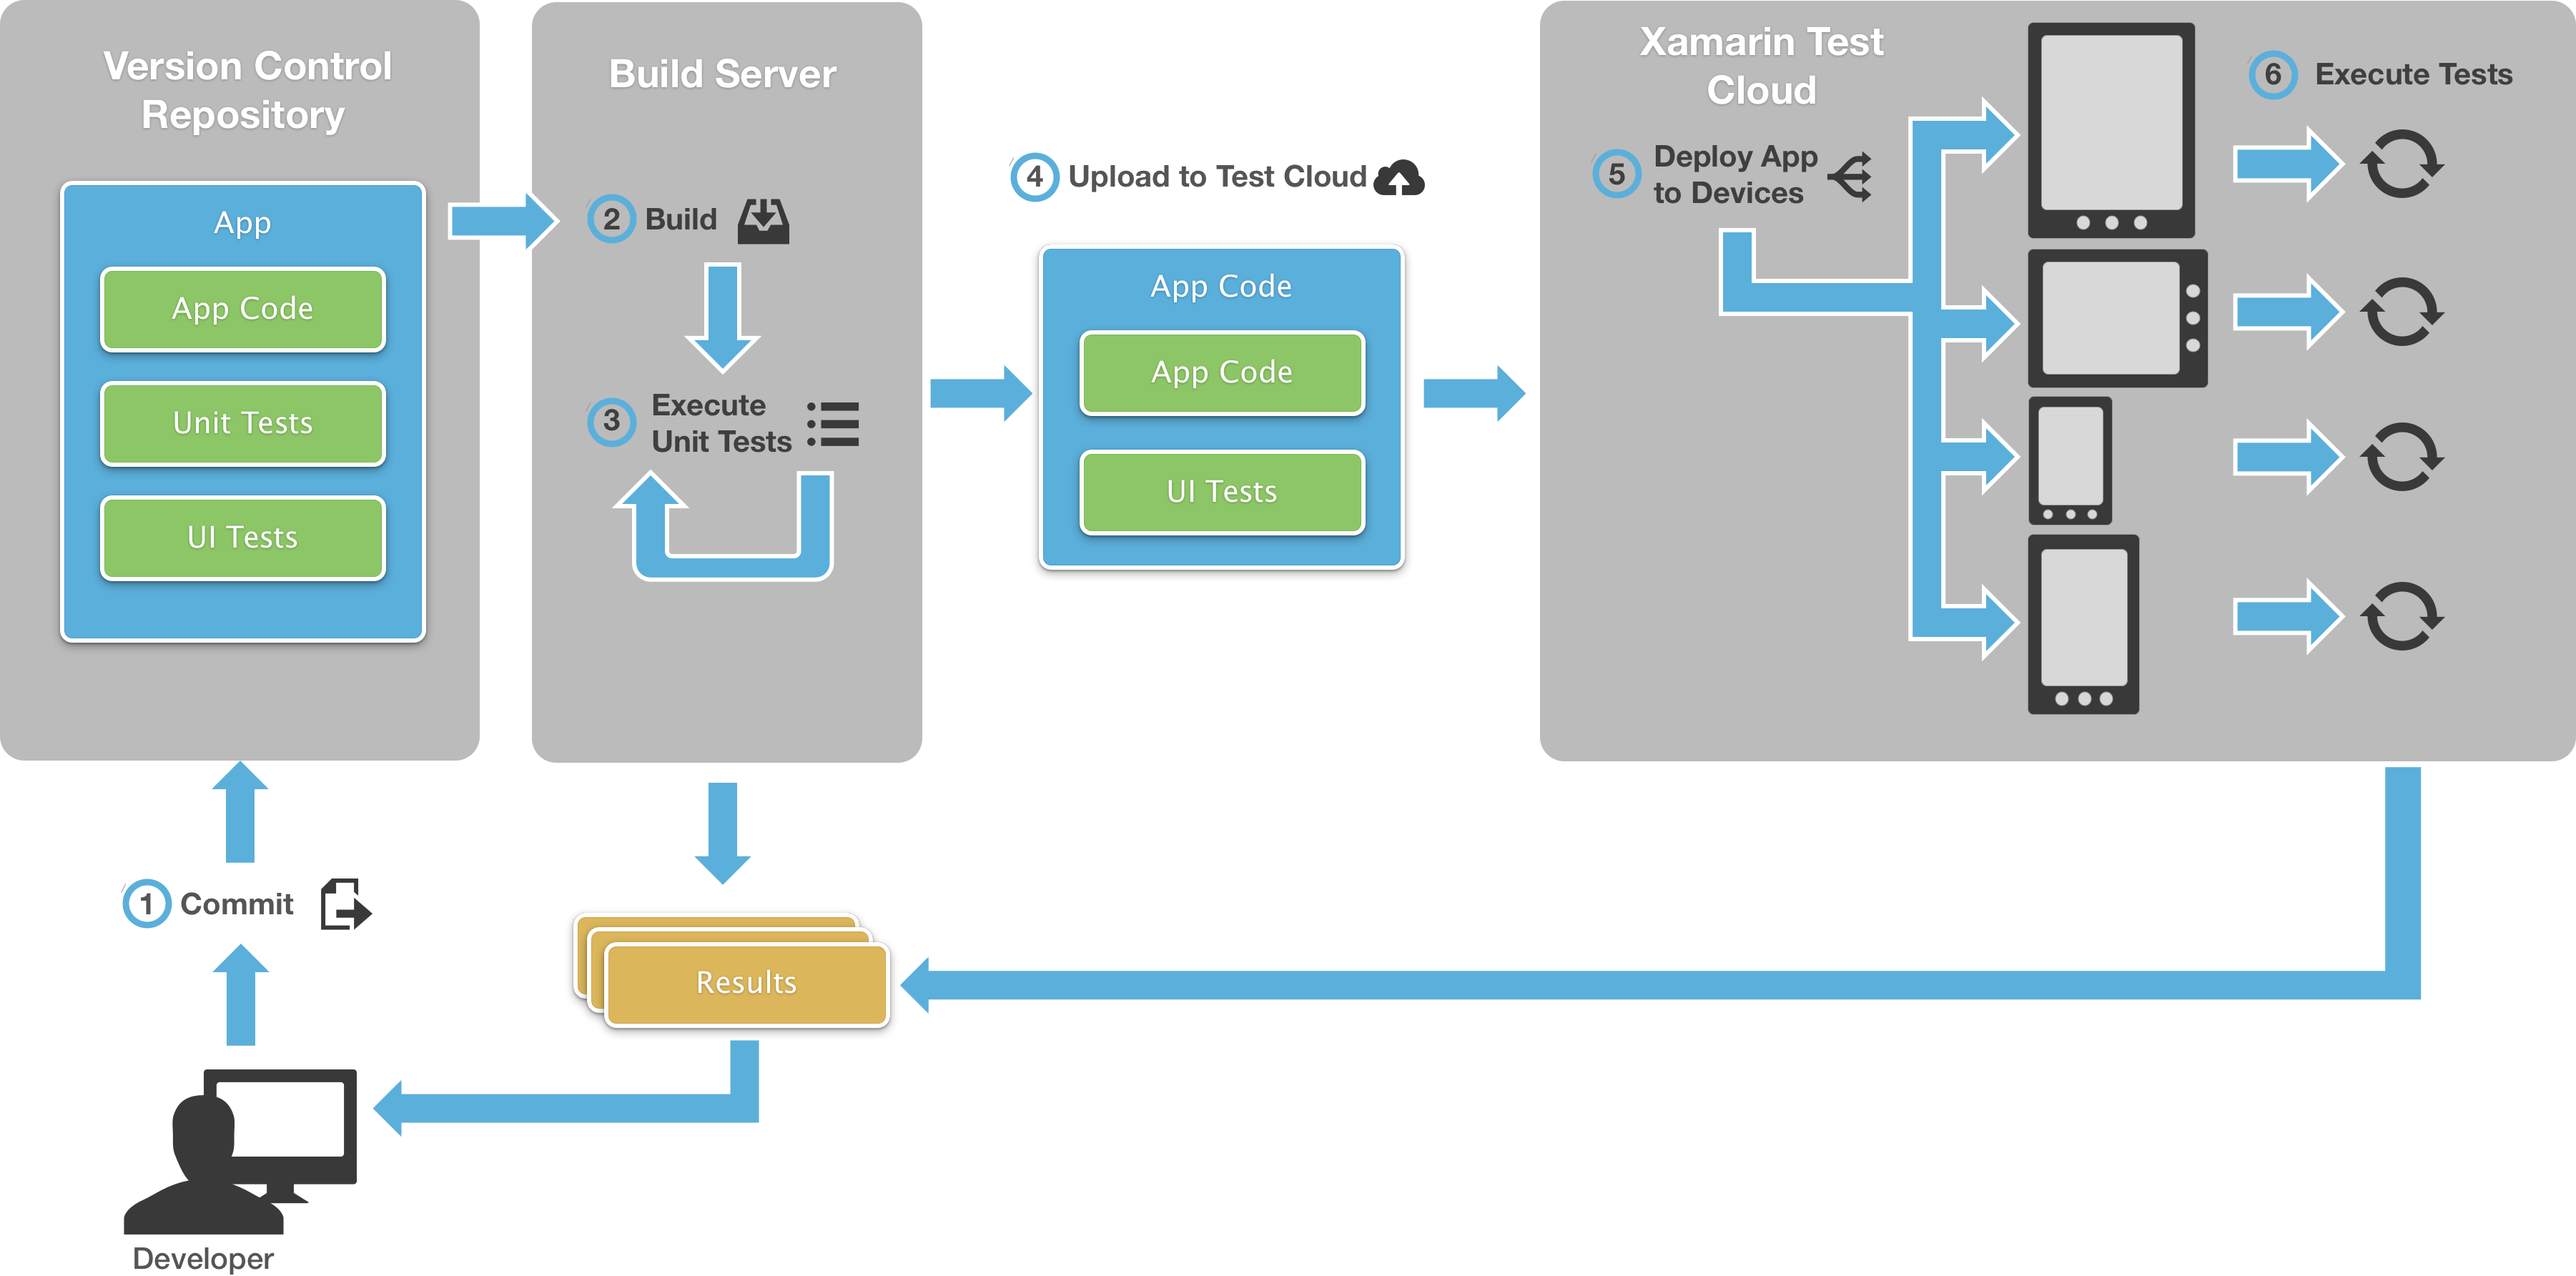 Introduction to continuous integration with xamarin xamarin introduction to continuous integration with xamarin xamarin microsoft docs ccuart Image collections